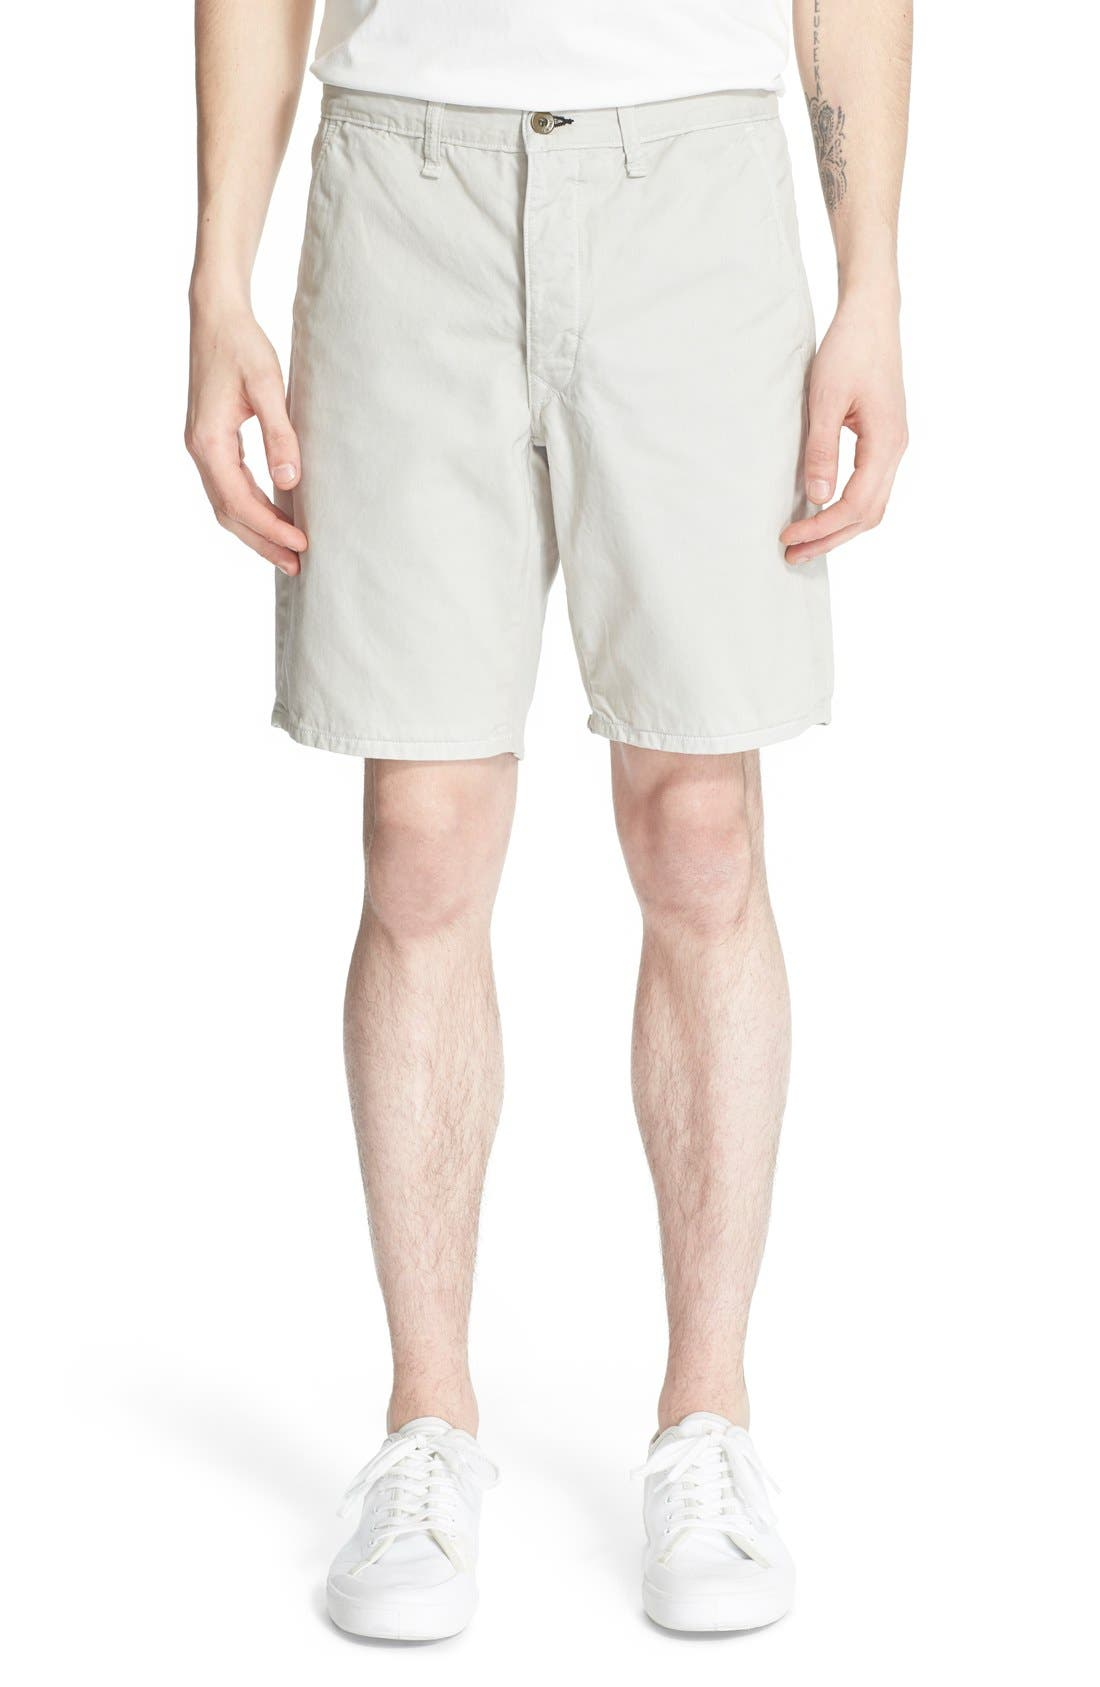 Alternate Image 1 Selected - rag & bone 'Standard Issue' Cotton Shorts